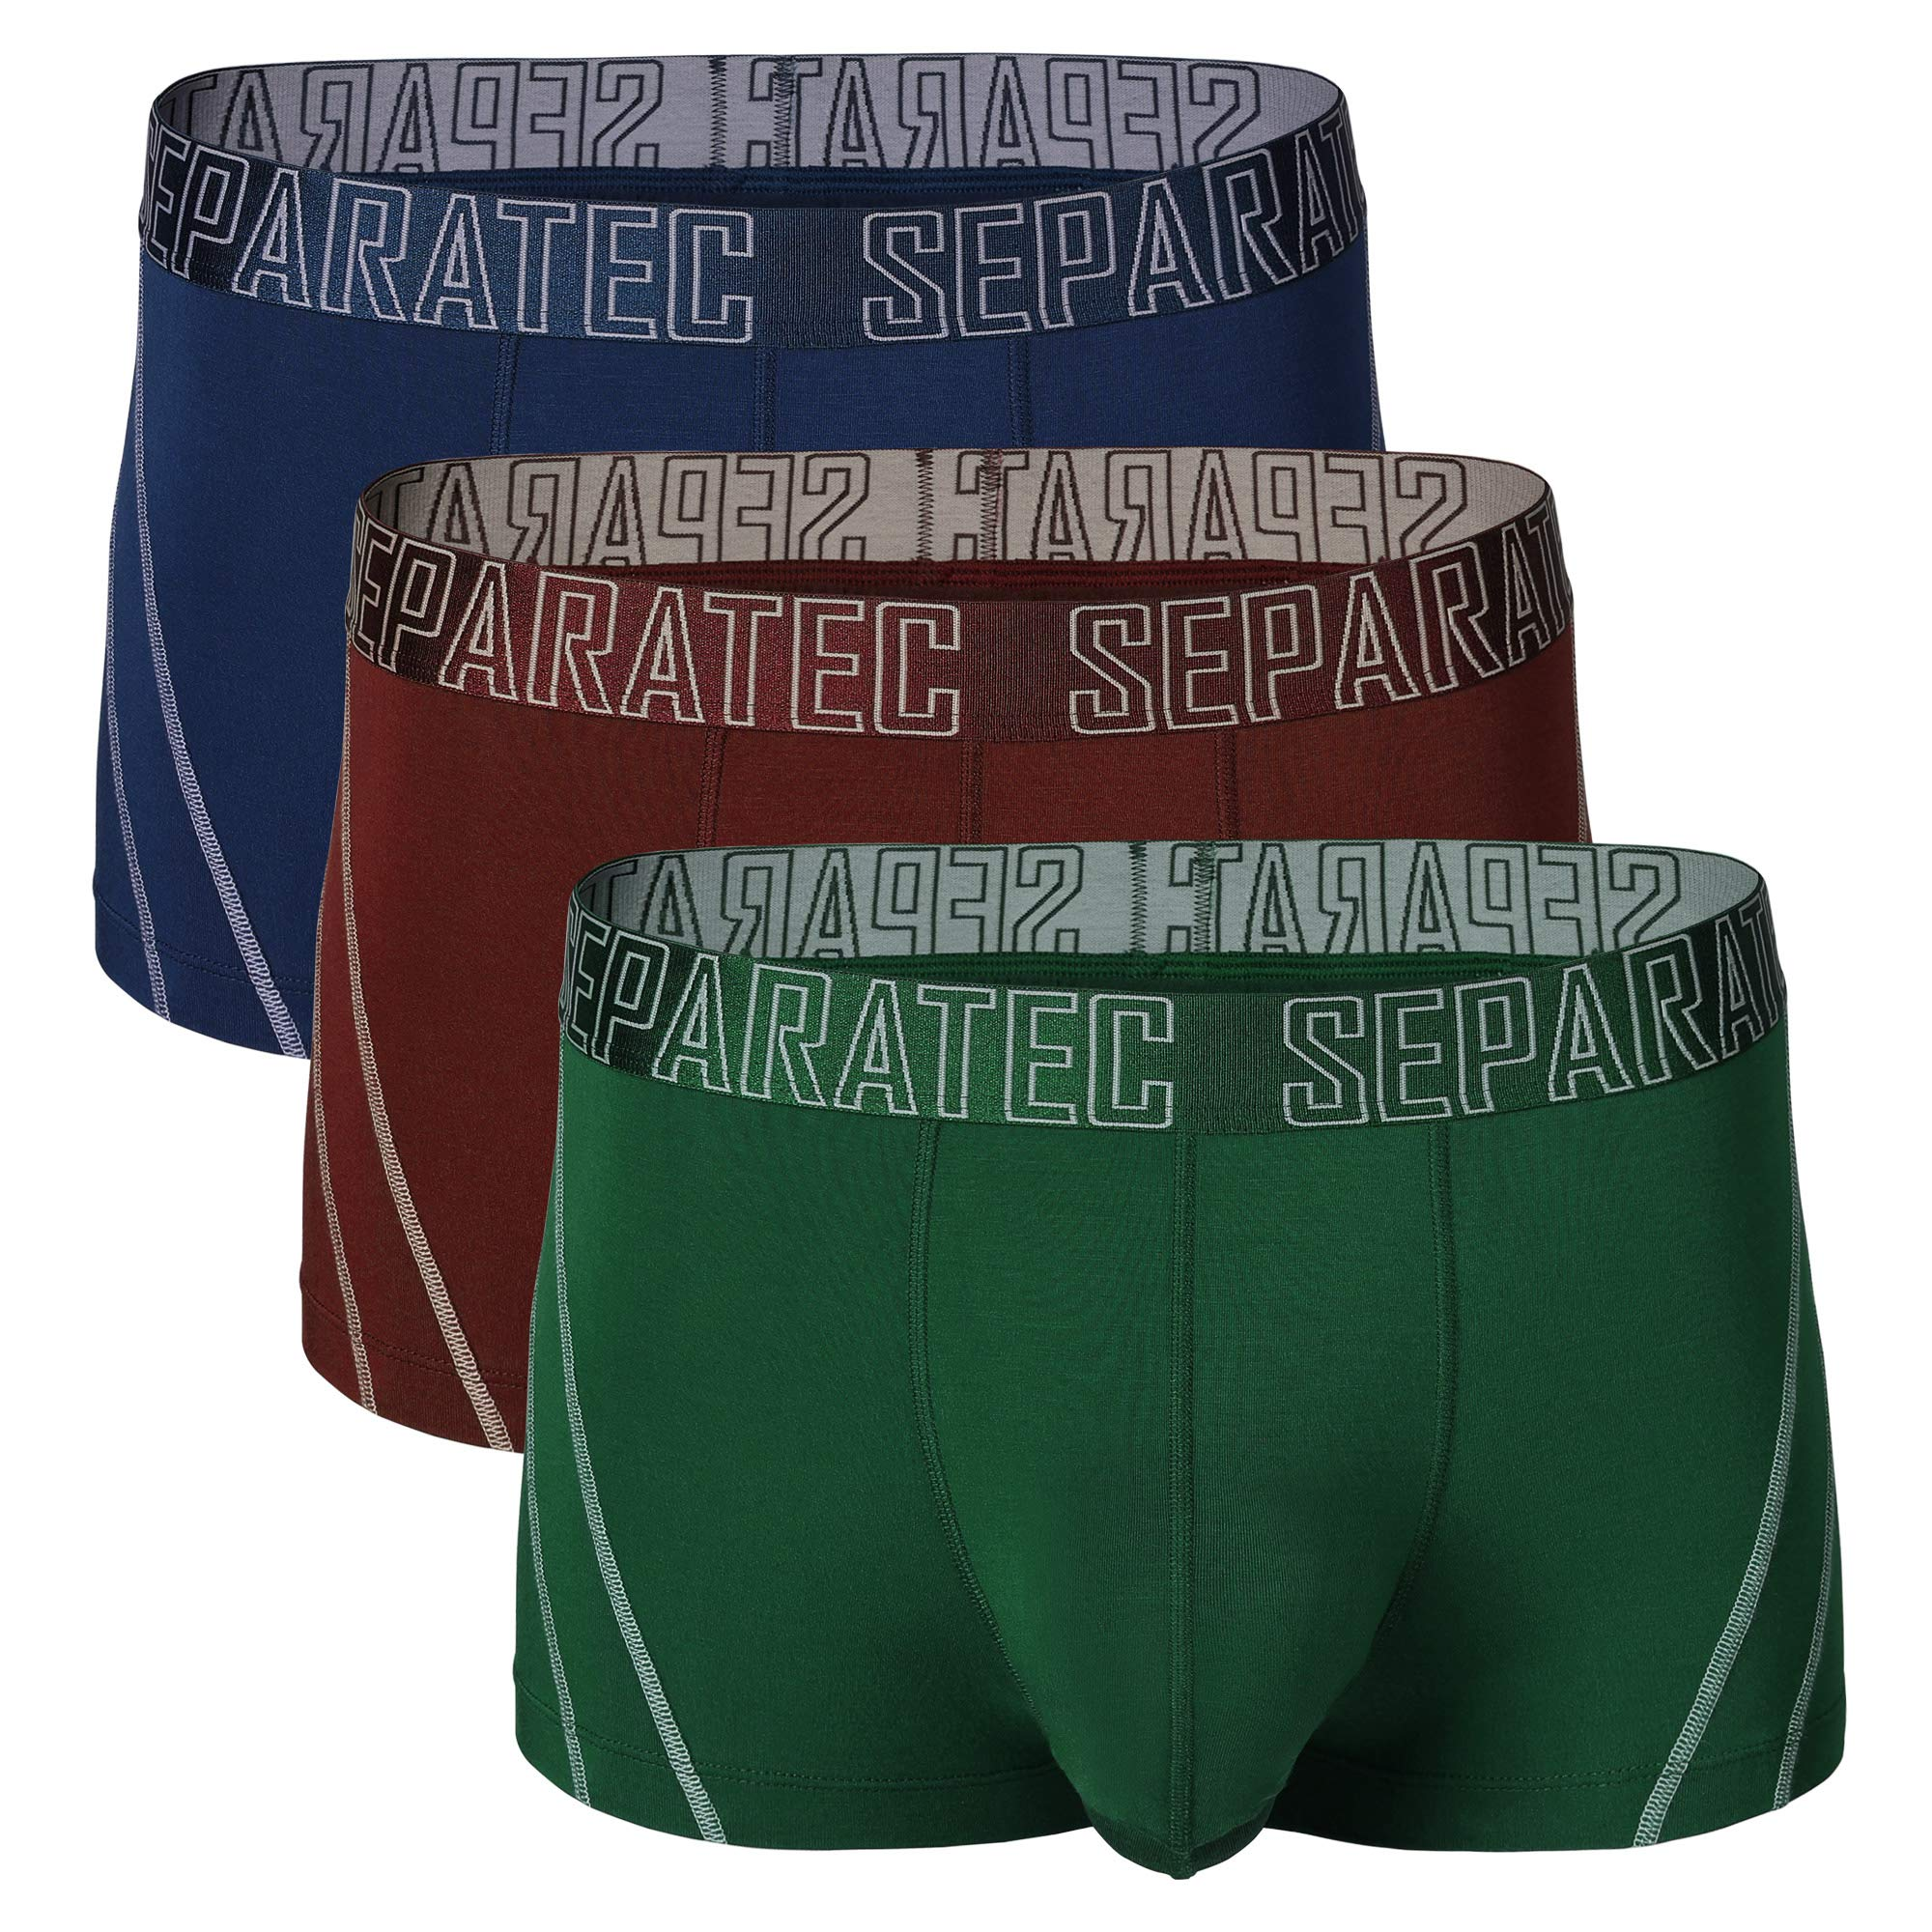 Separatec Mens Underwear Stylish Striped Pattern Smooth Cotton Trunks 3 Pack